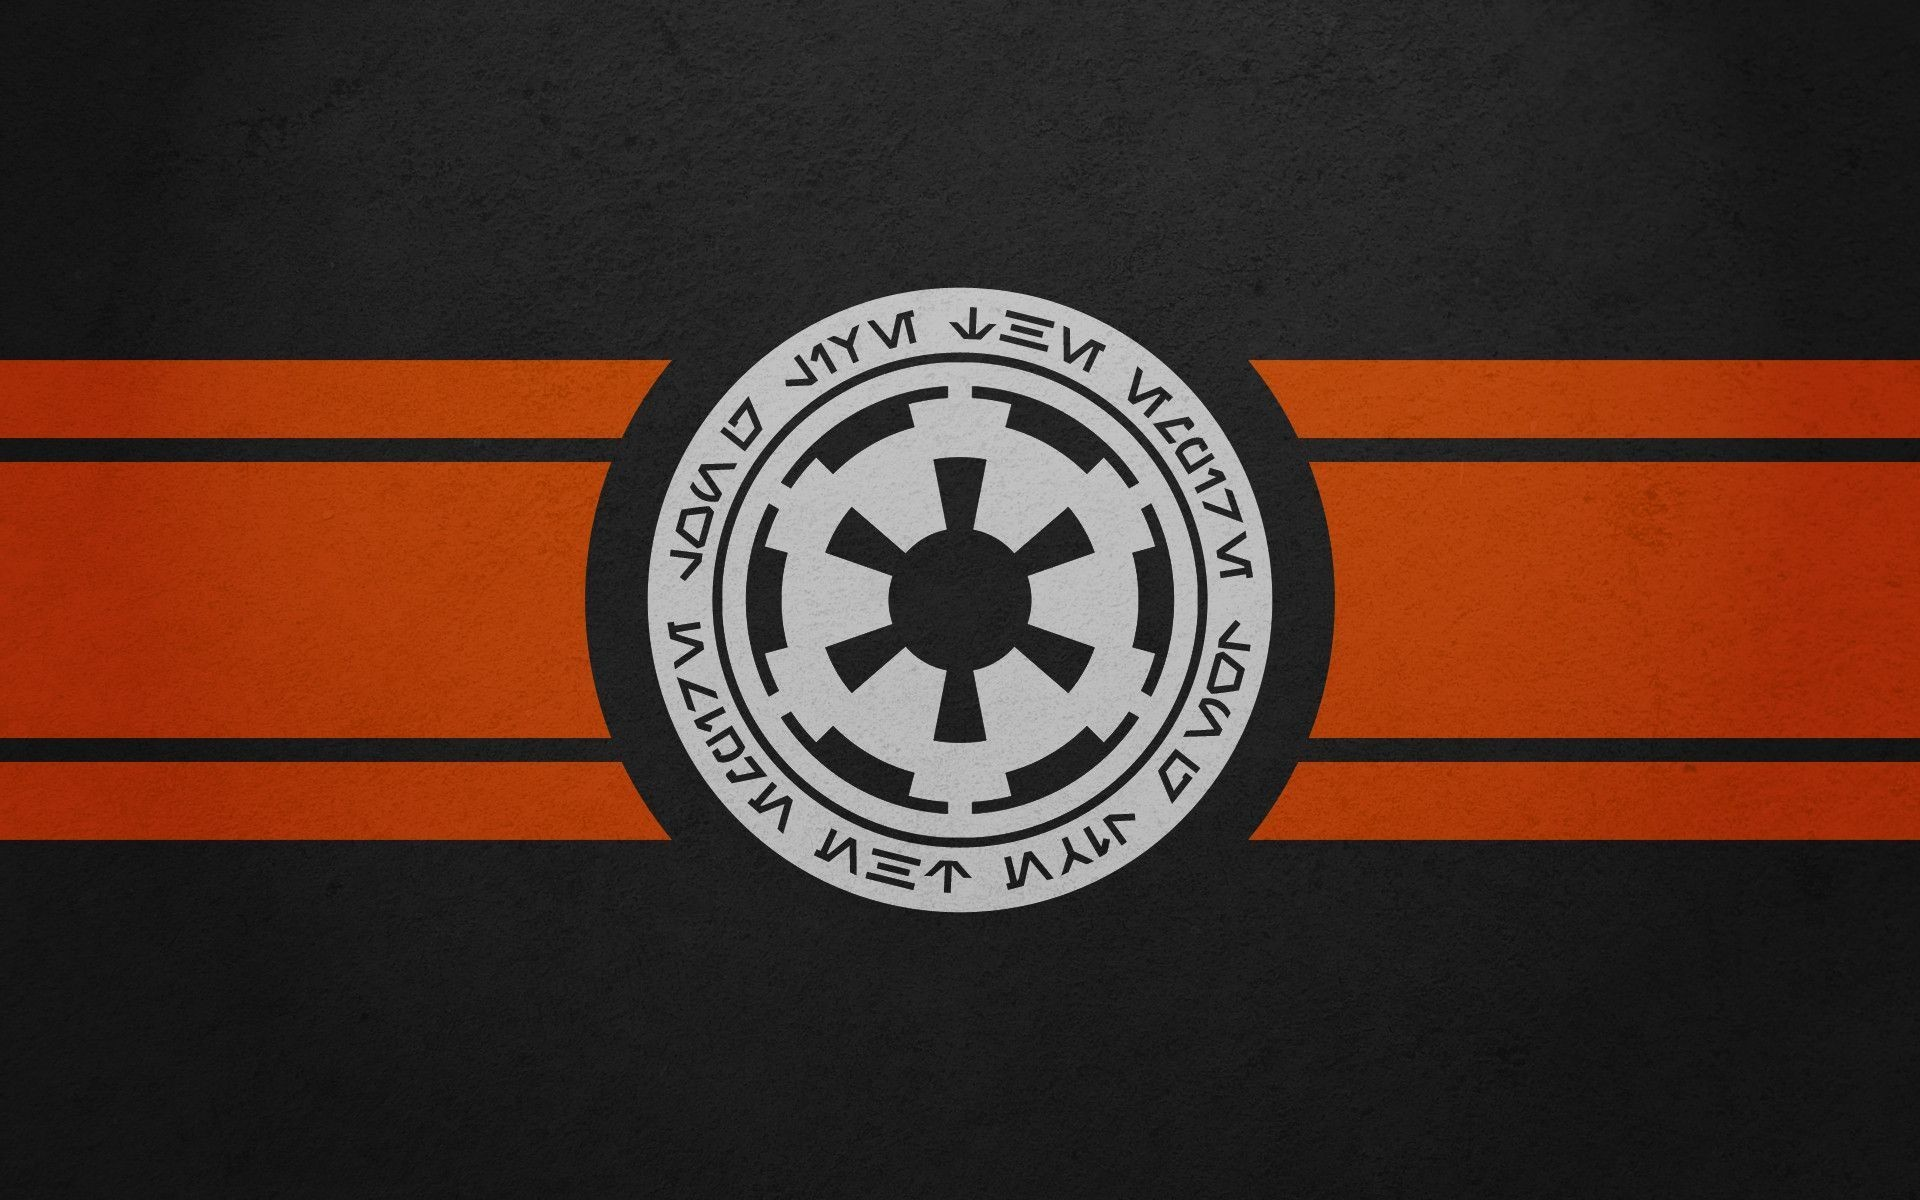 1920x1200 Star Wars Imperial Wallpapers - Wallpaper Cave